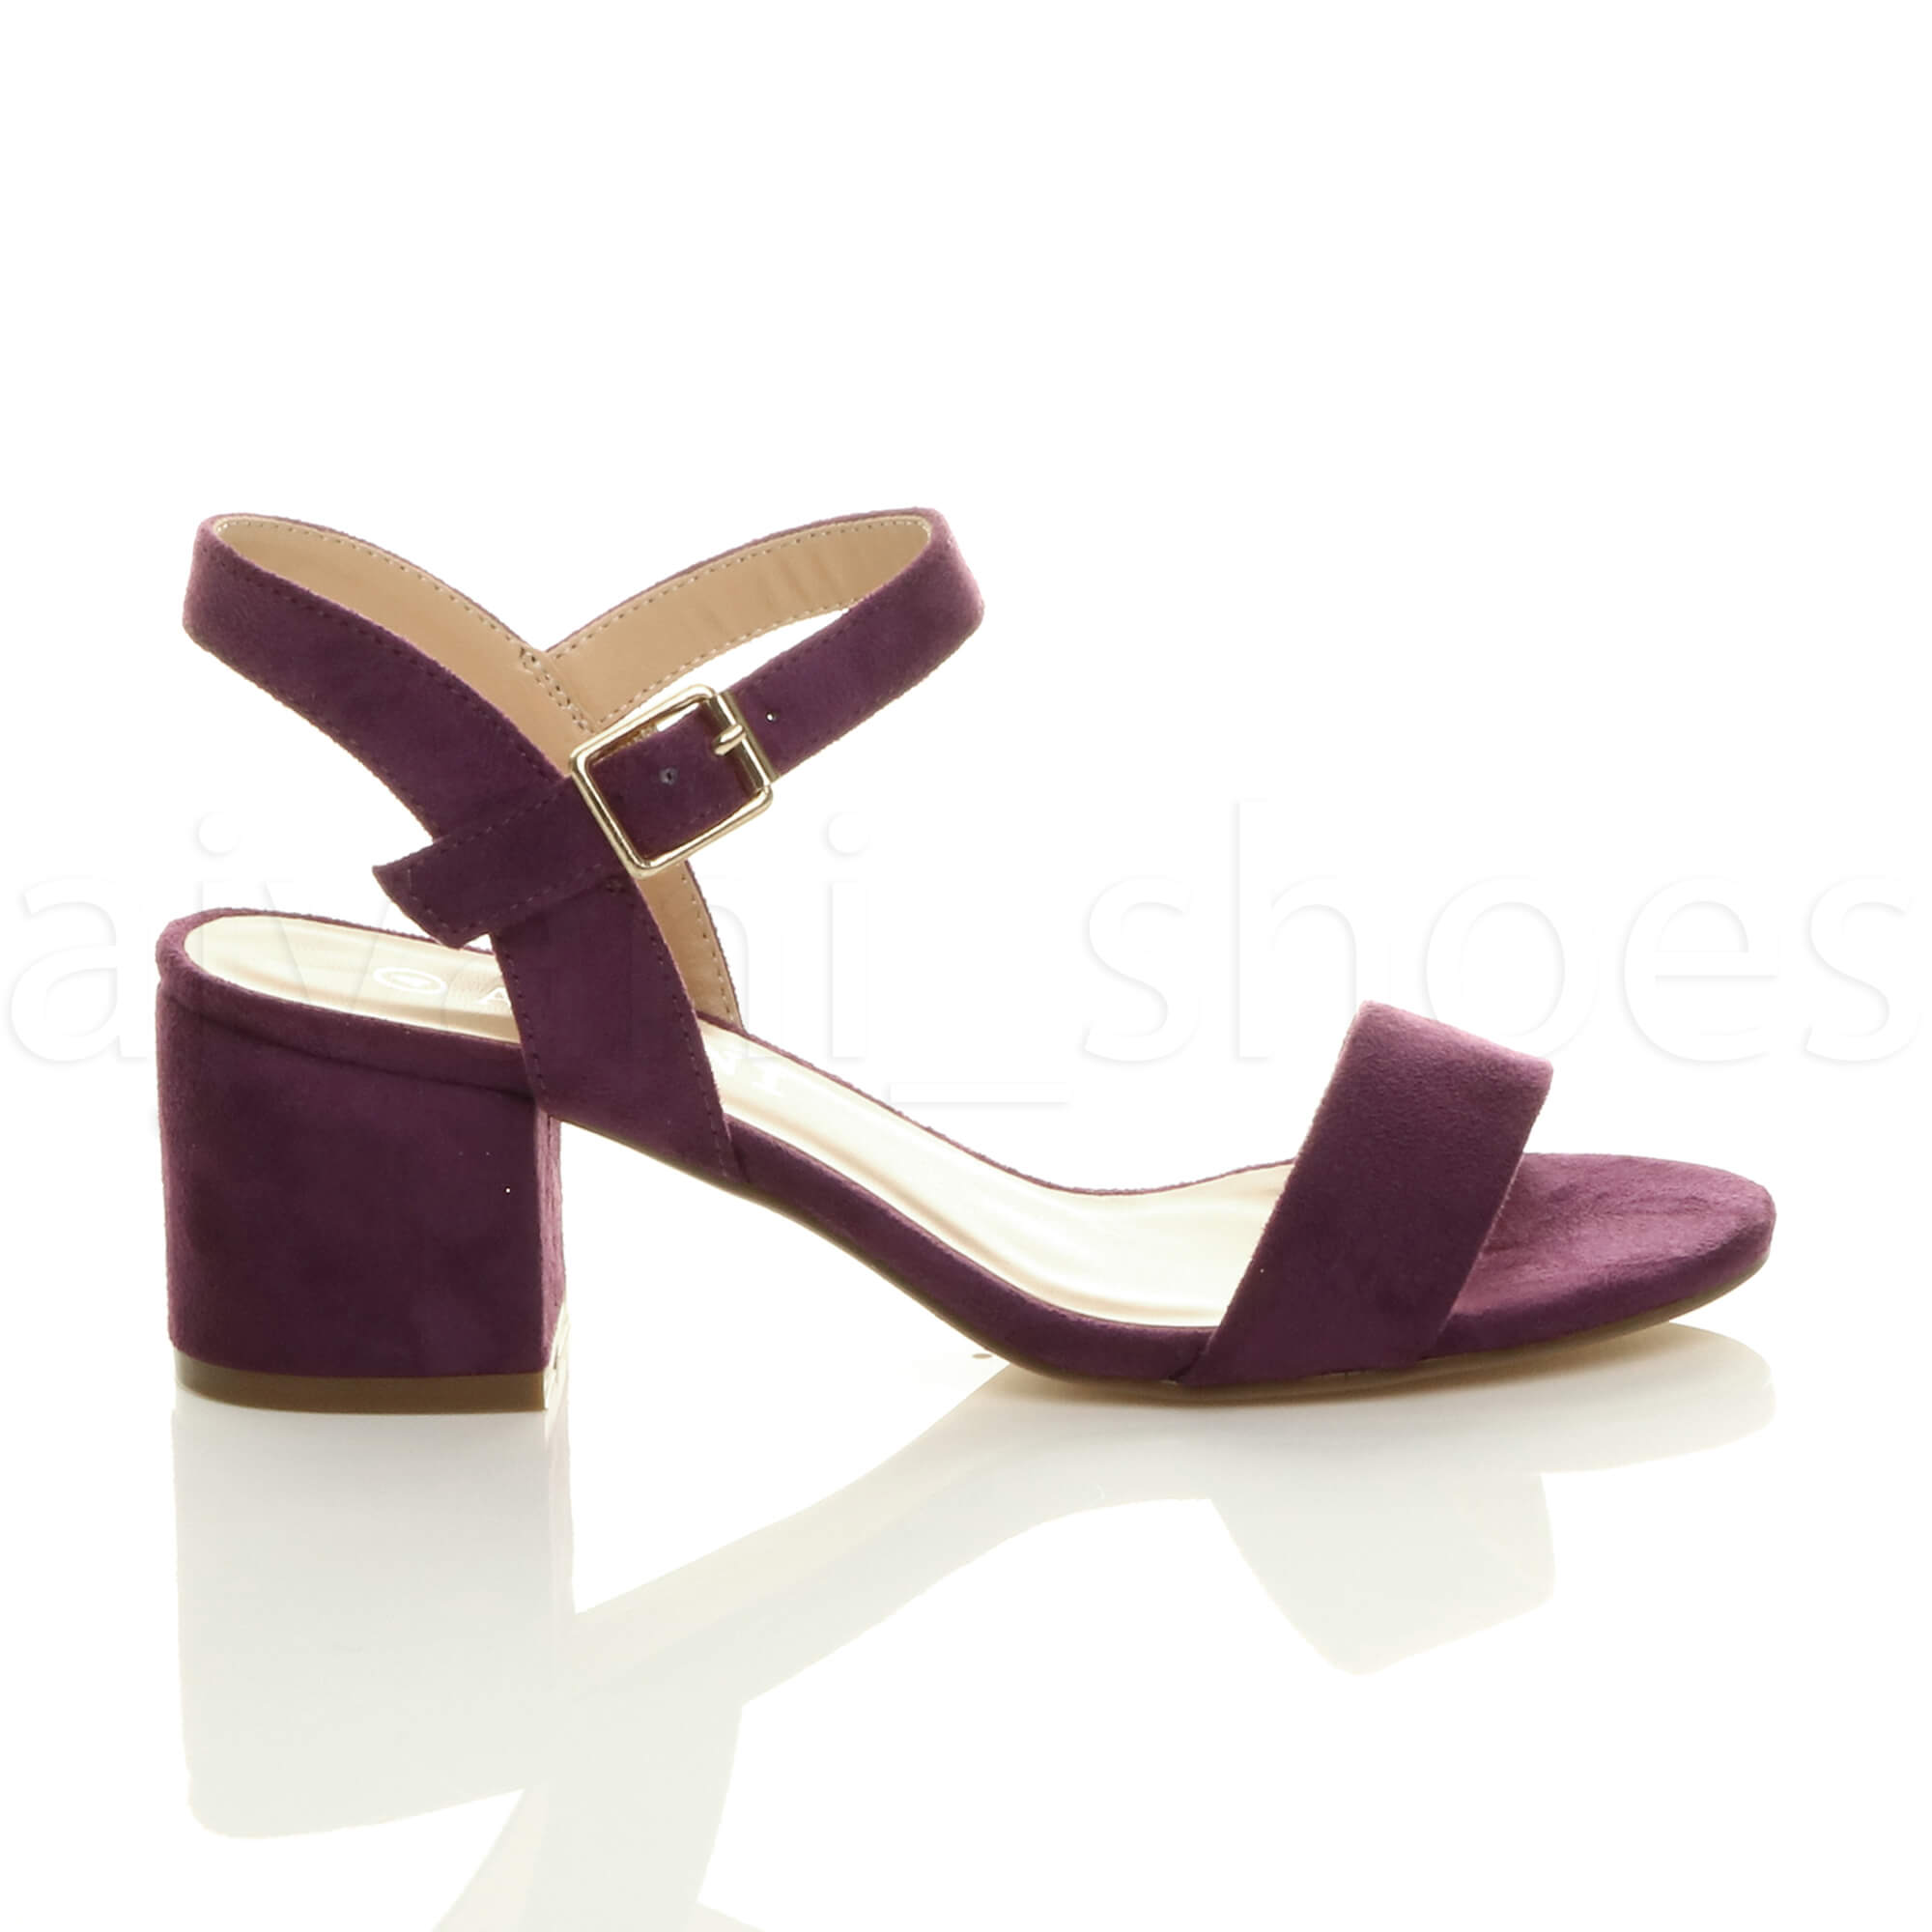 WOMENS-LADIES-MID-LOW-BLOCK-HEEL-PEEP-TOE-ANKLE-STRAP-STRAPPY-PARTY-SANDALS-SIZE thumbnail 99